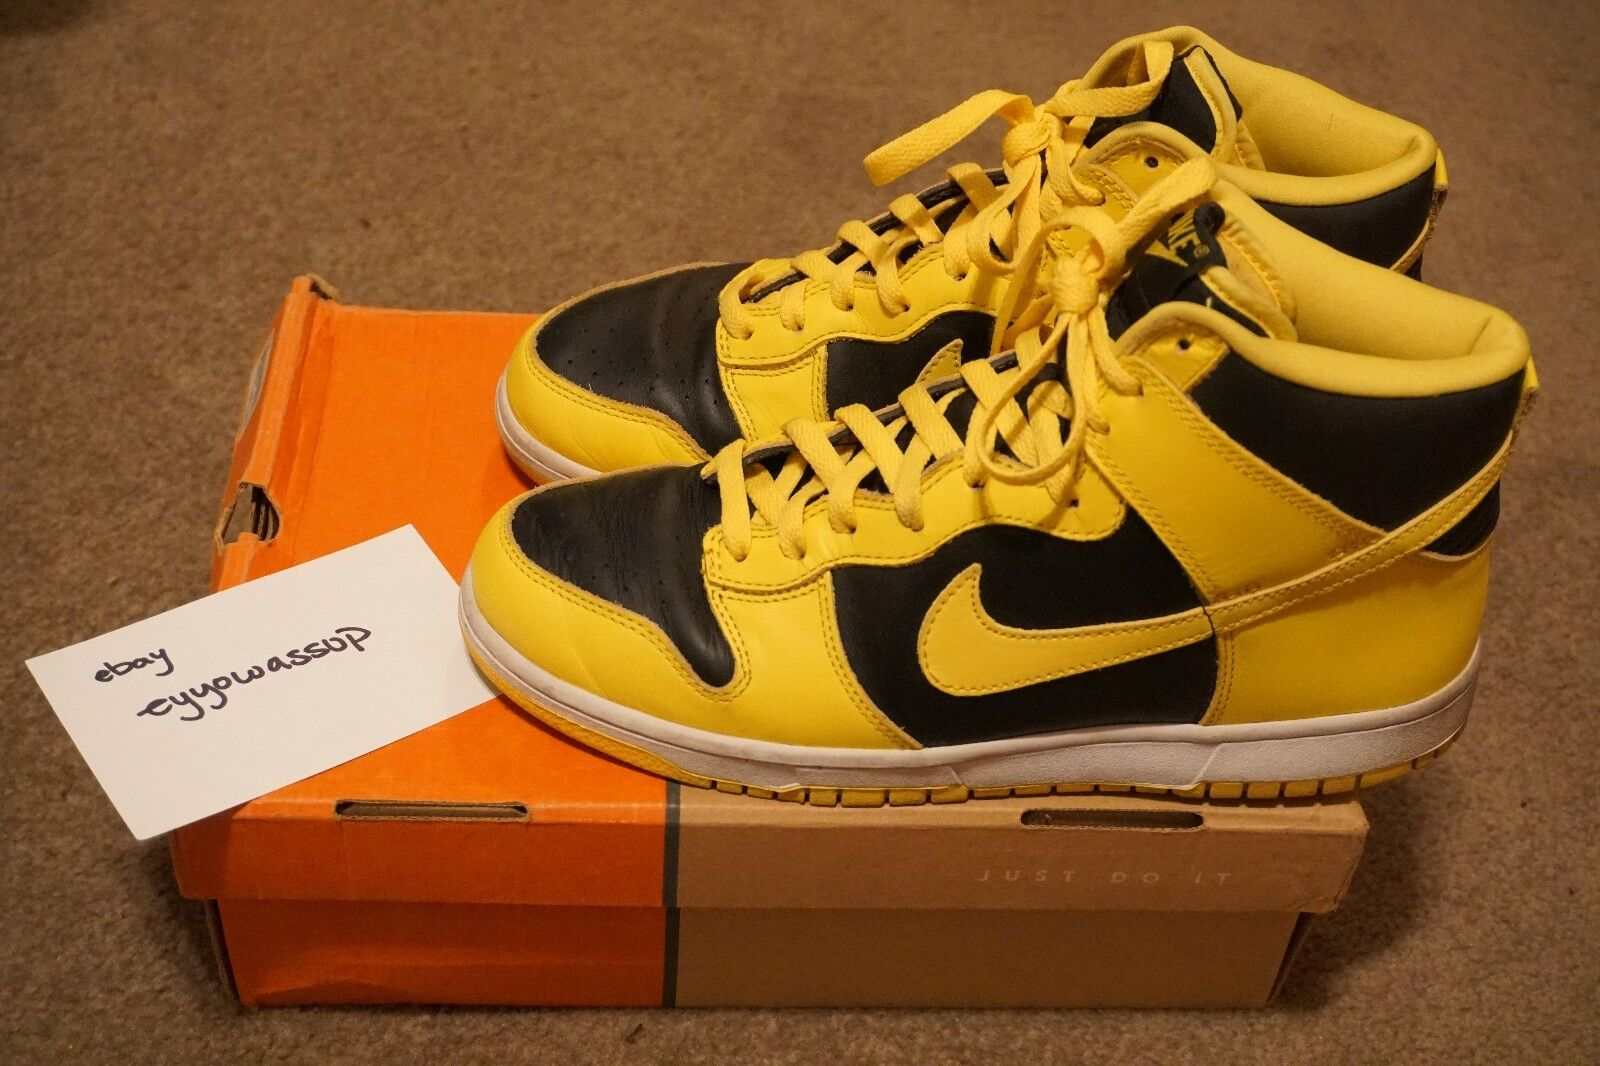 2003 NIKE DUNK HIGH SIZE GOLDENROD SIZE HIGH 10.5 21eee9